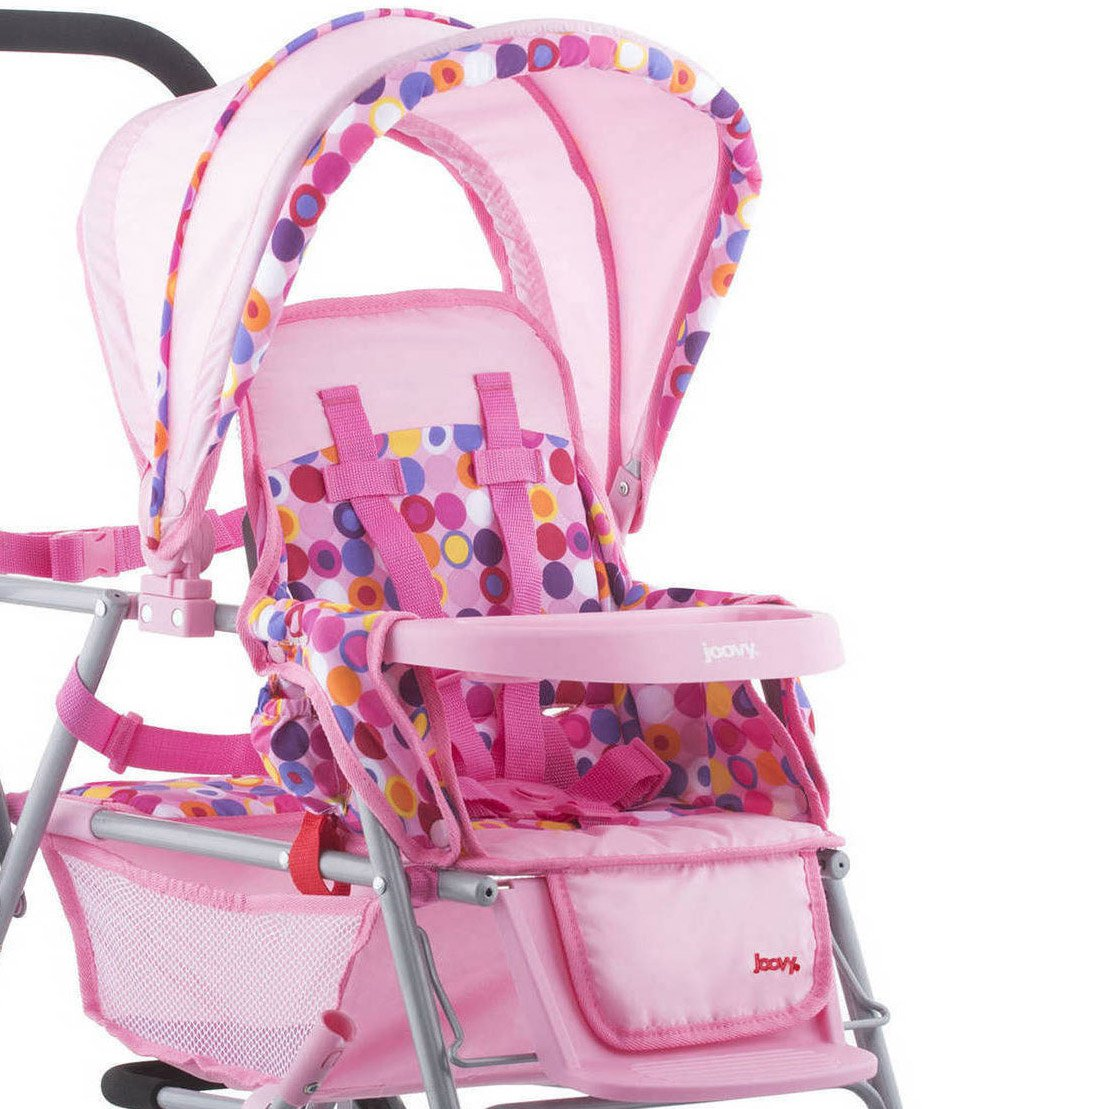 Toy Buggy With Car Seat Joovy Caboose Toy Stroller Baby Doll Stroller Pink